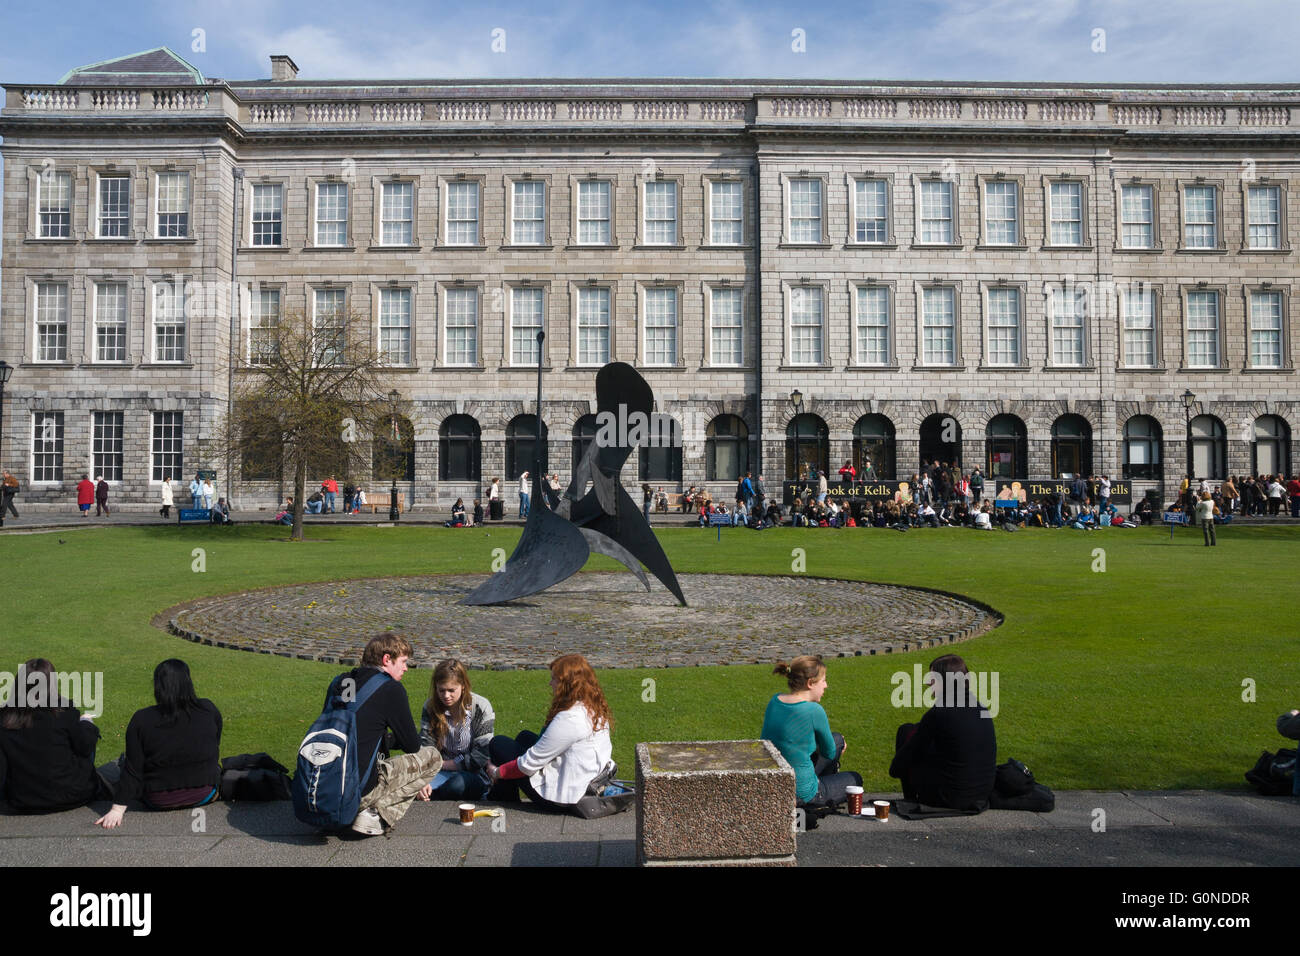 Students at Fellows Square, modern sculpture in front of Old Library, Trinity College, Dublin, Ireland (Eire), Europe - Stock Image